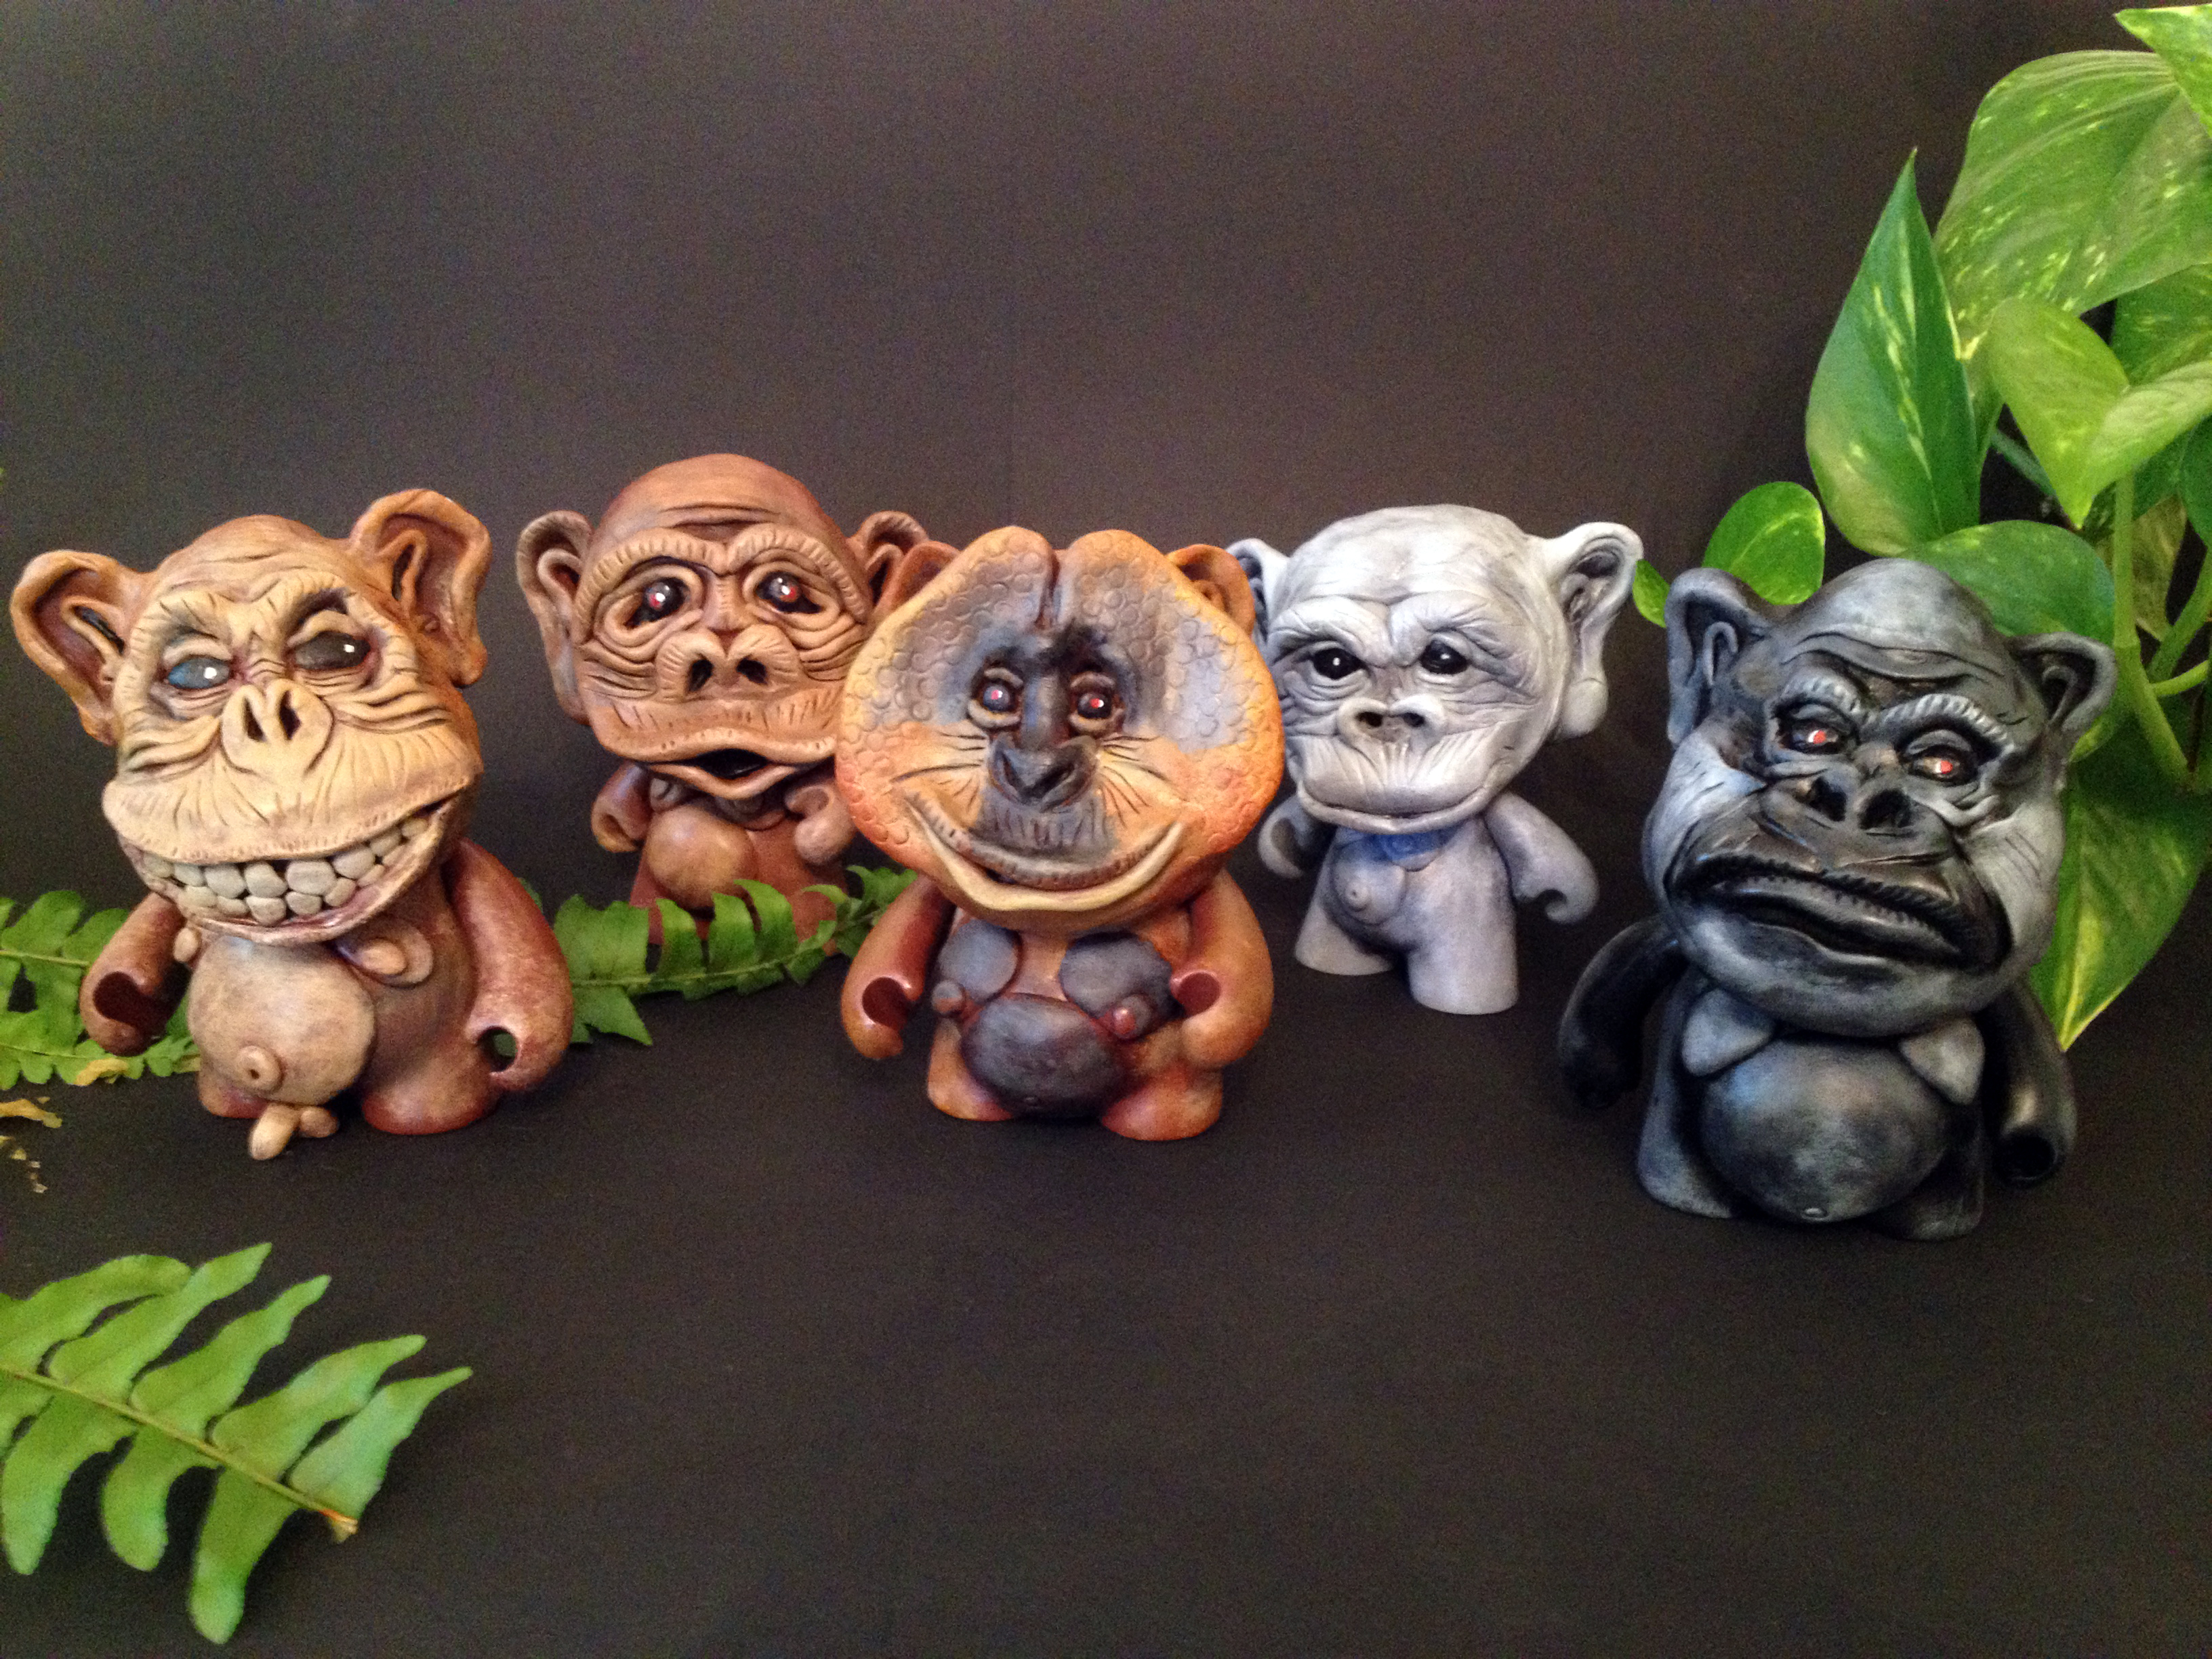 mr. prvrt Intelligent Apes Toy Series